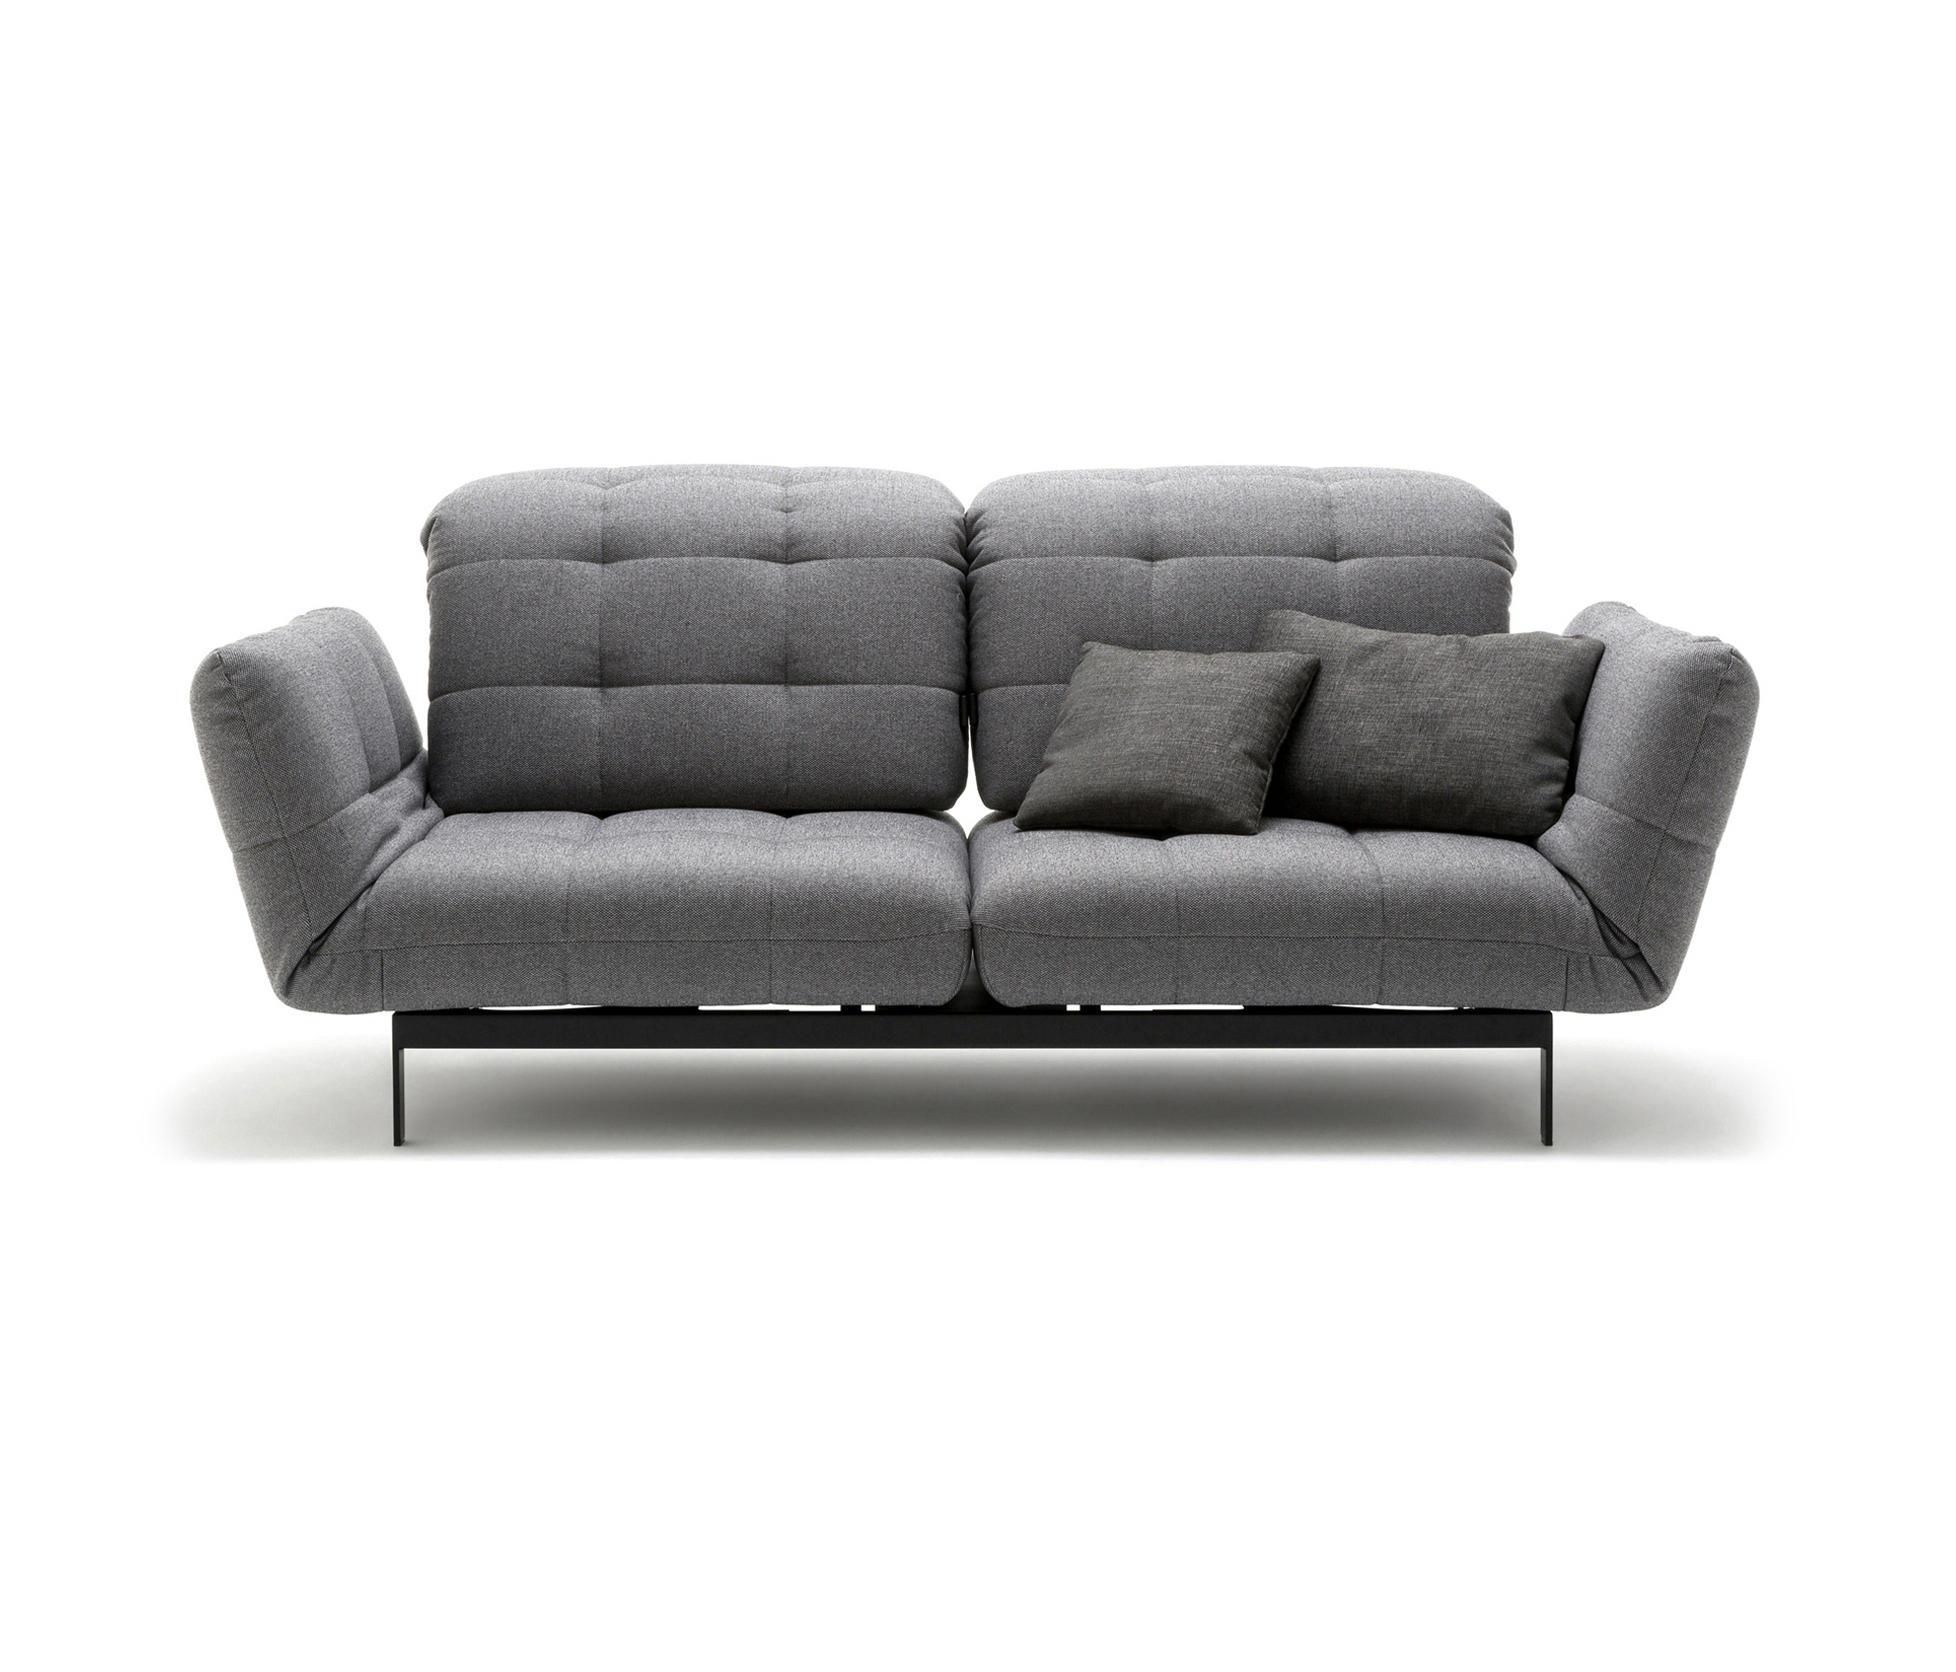 Rolf Benz Sofa Bed